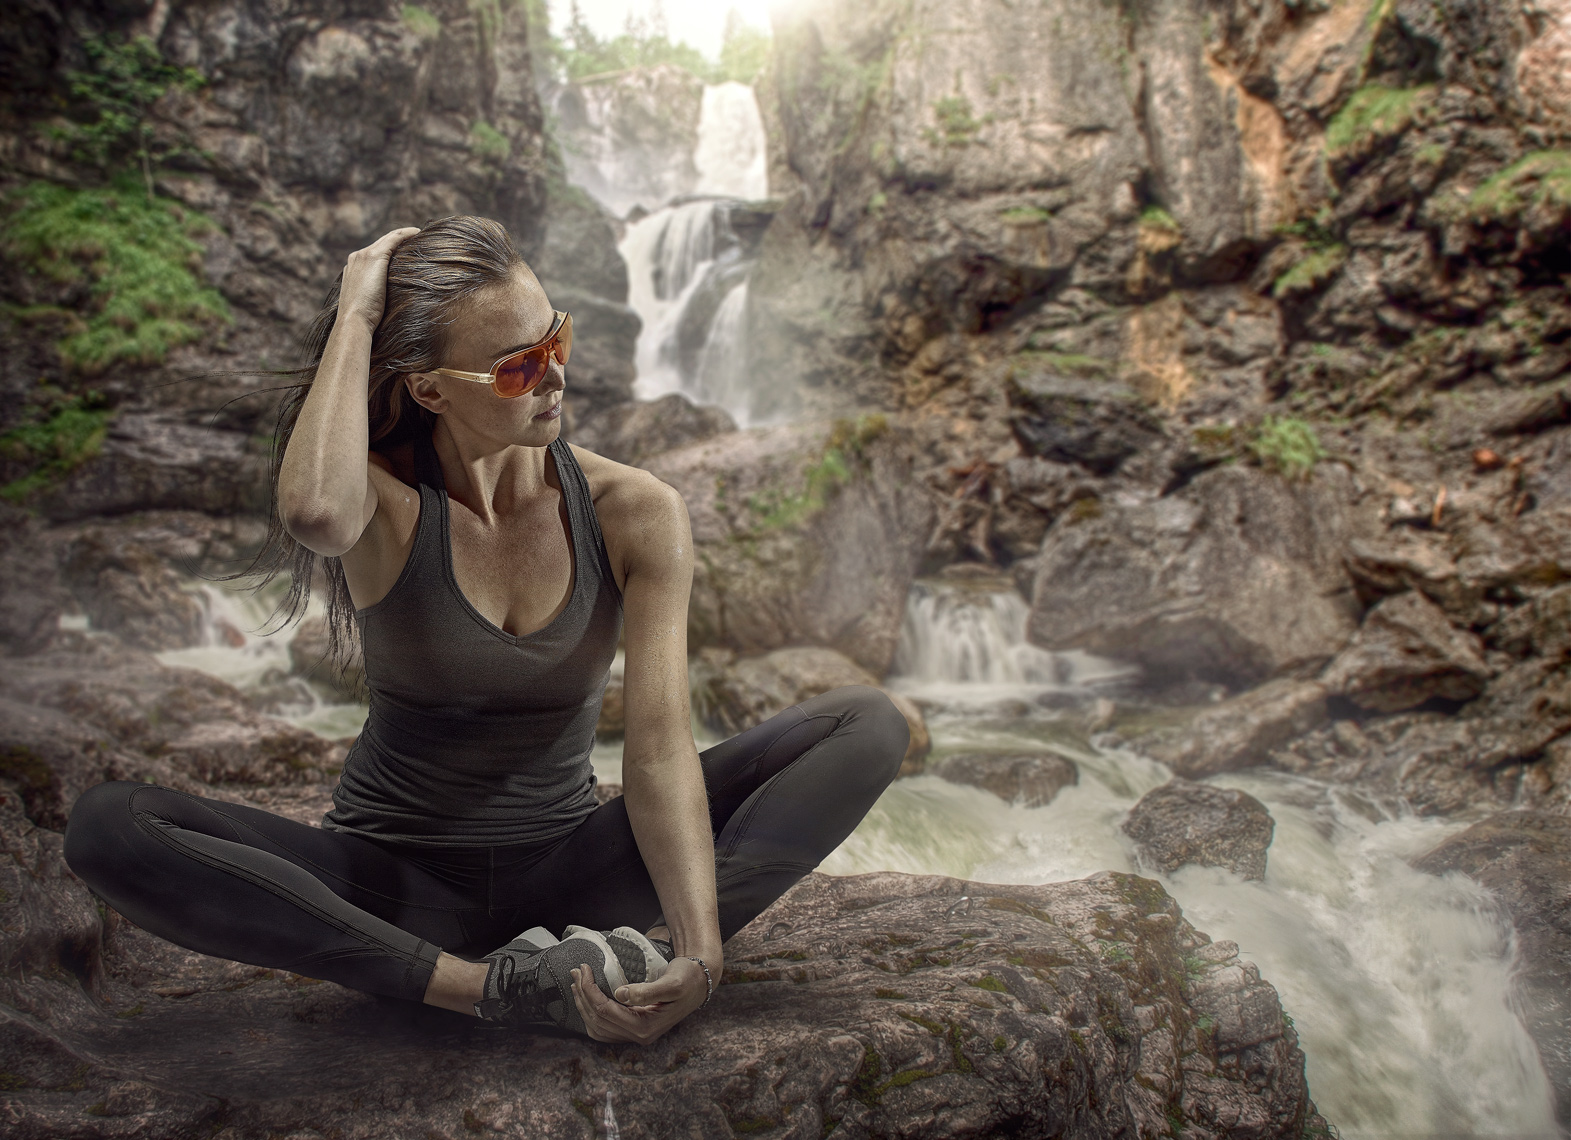 female hiker stretching on mountain trail with waterfall